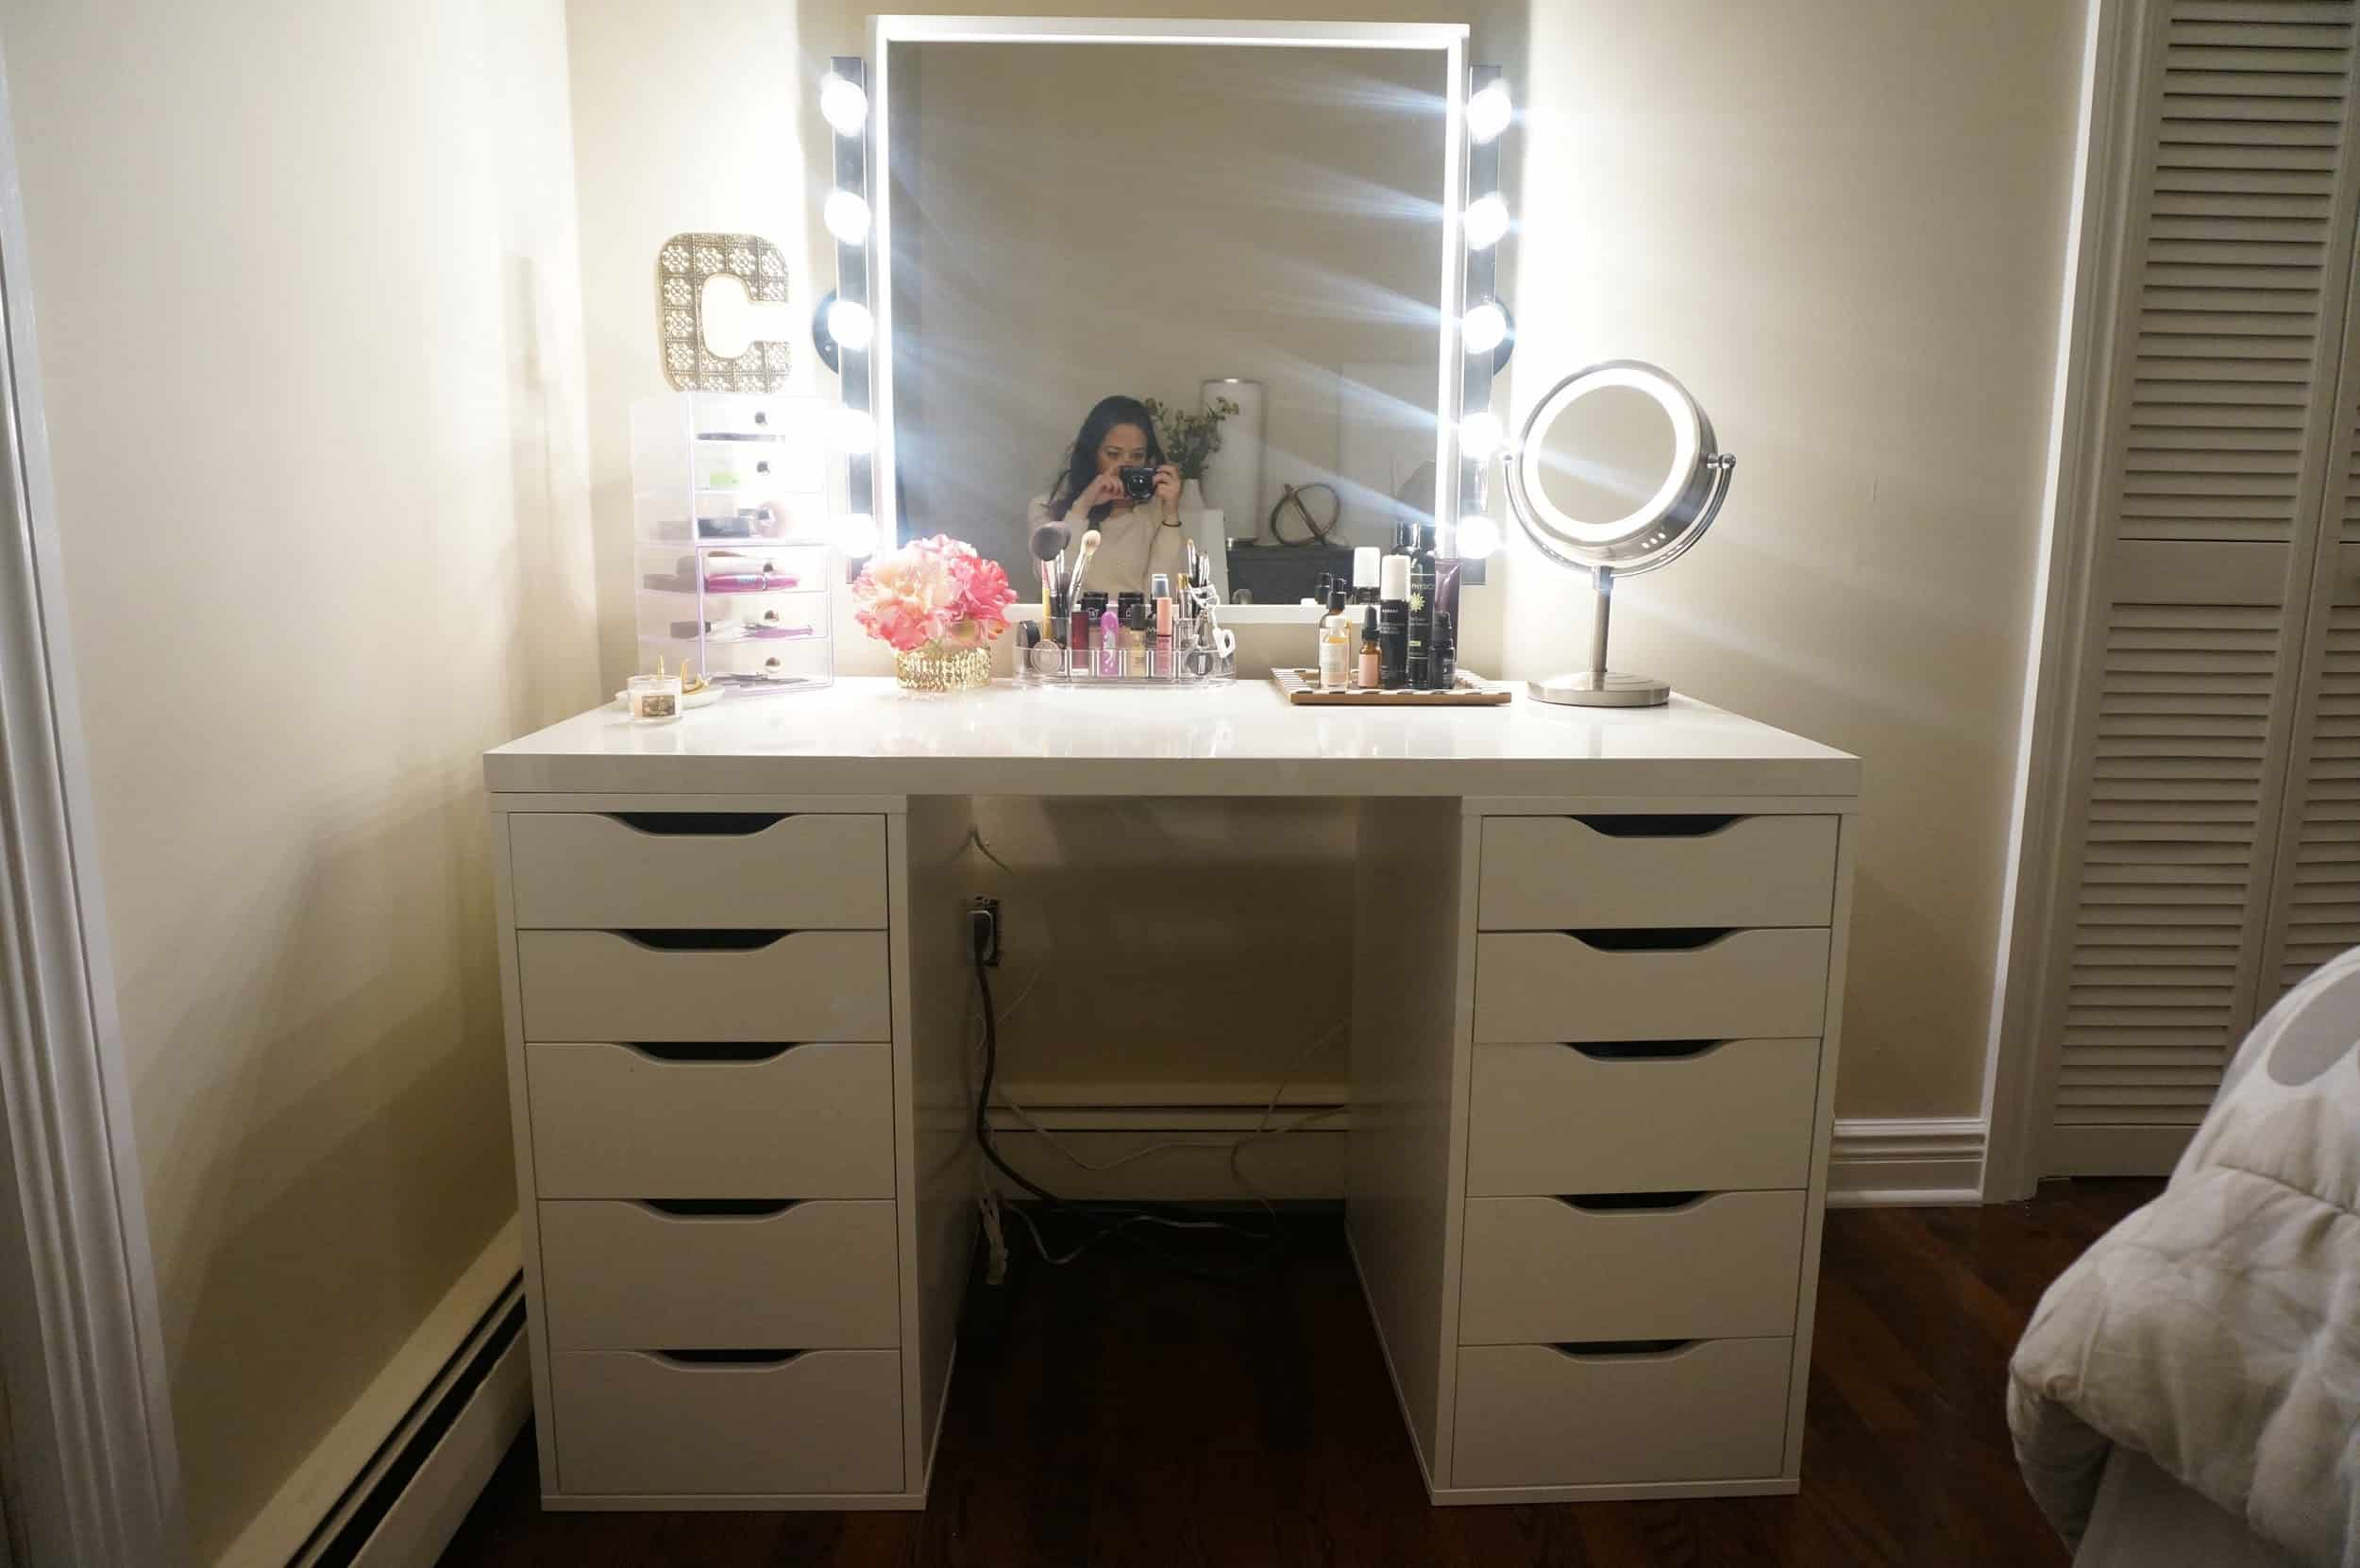 Vanity Table Made with IKEA Alex Drawer Units and an IKEA Tabletop